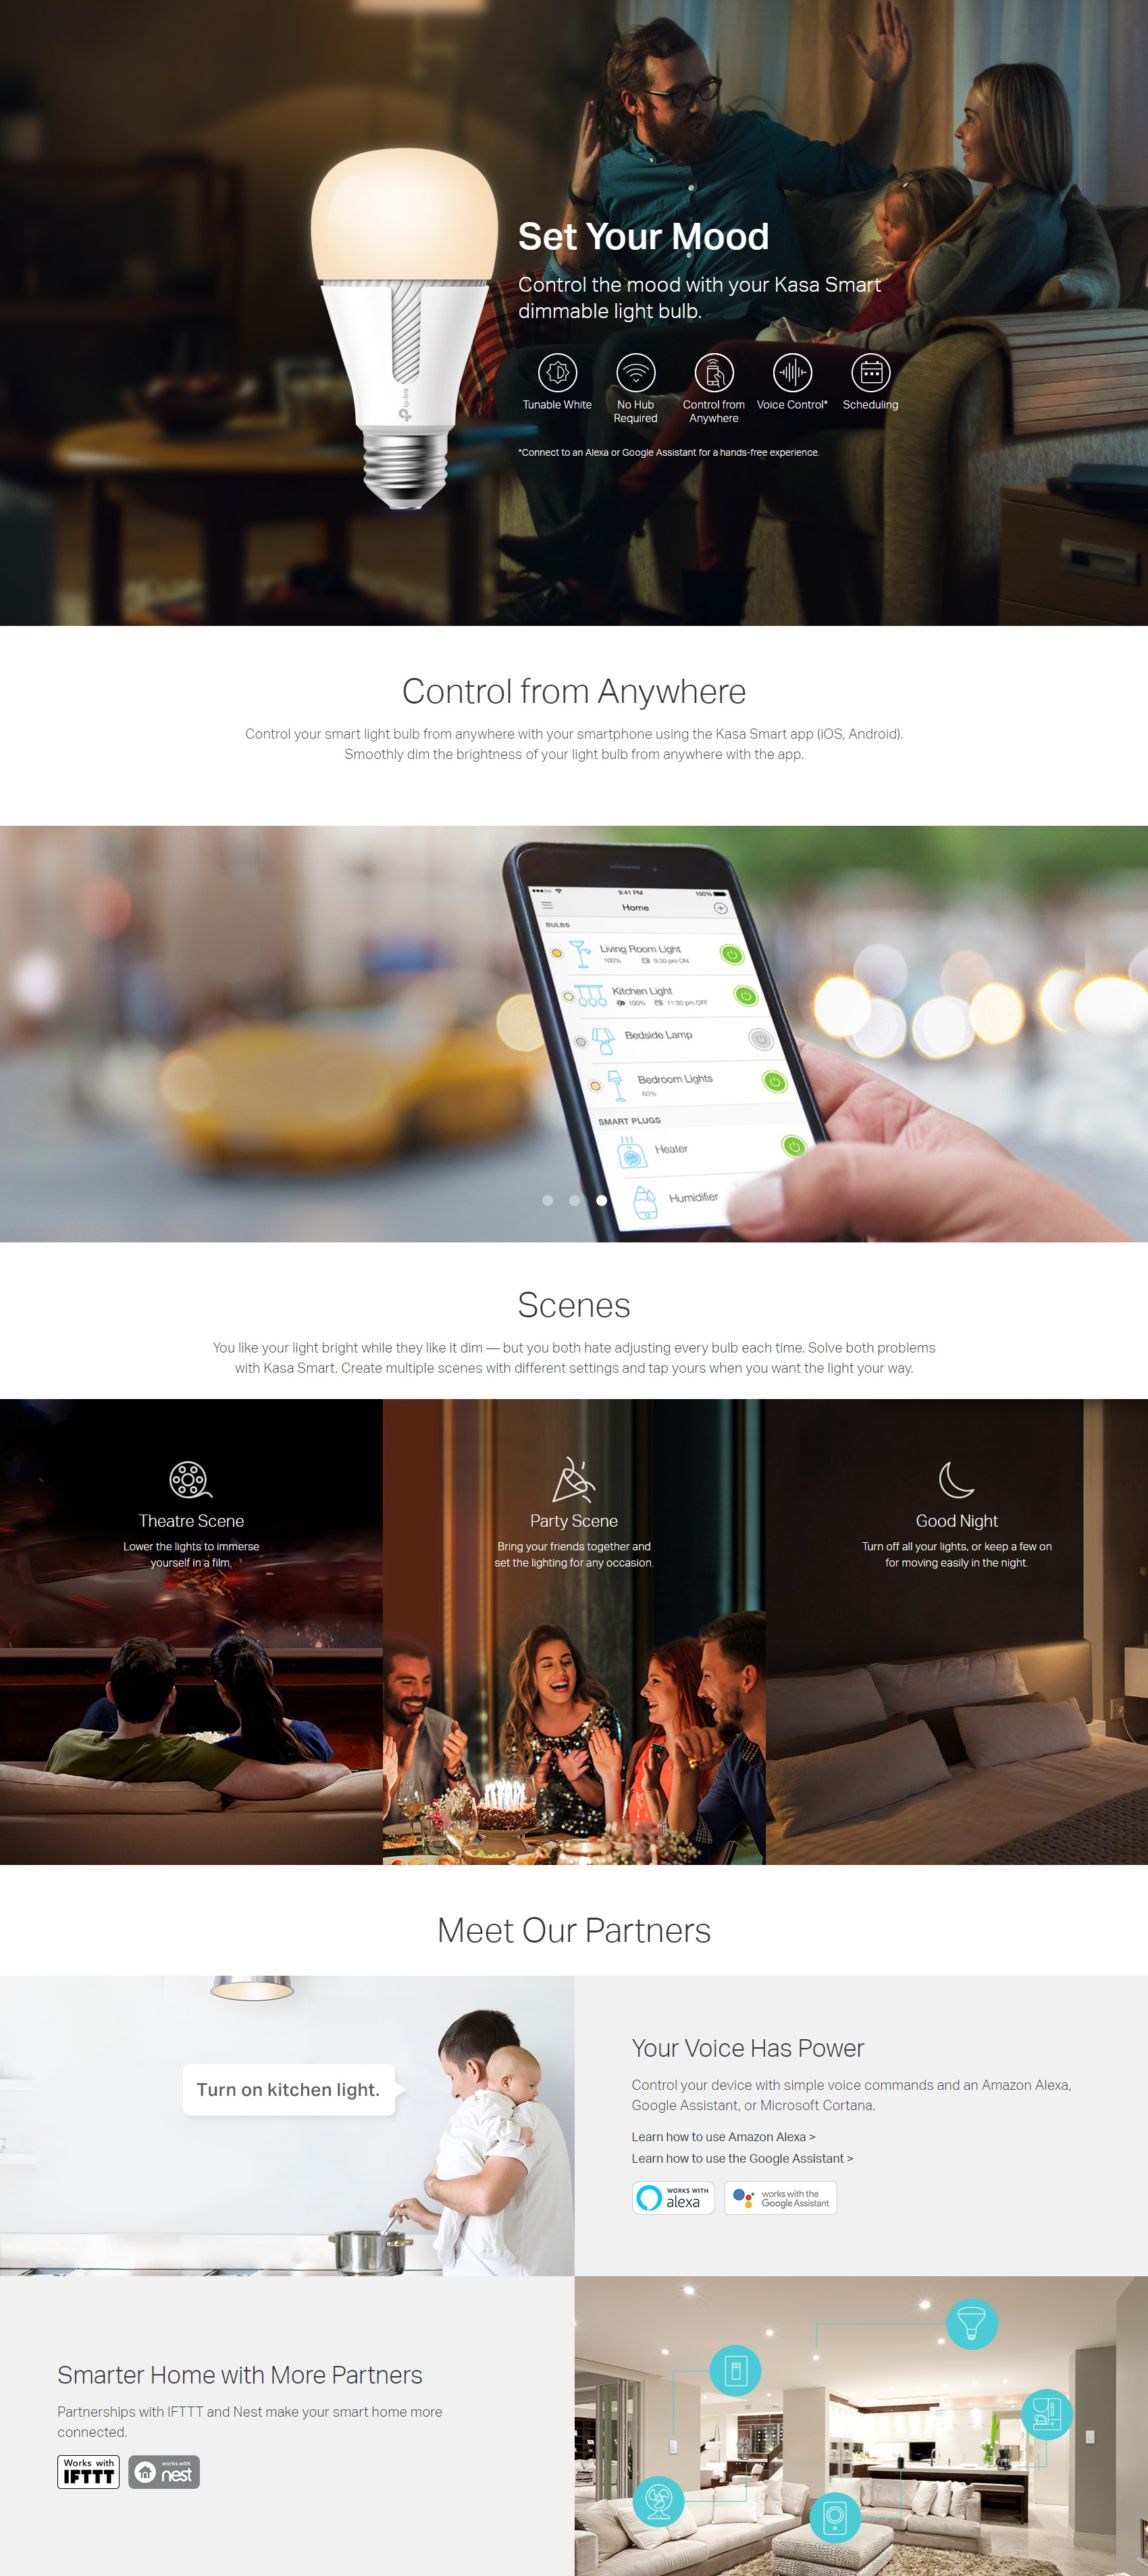 A large marketing image providing additional information about the product TP-LINK KL110B Smart Wi-Fi LED Bulb - Additional alt info not provided